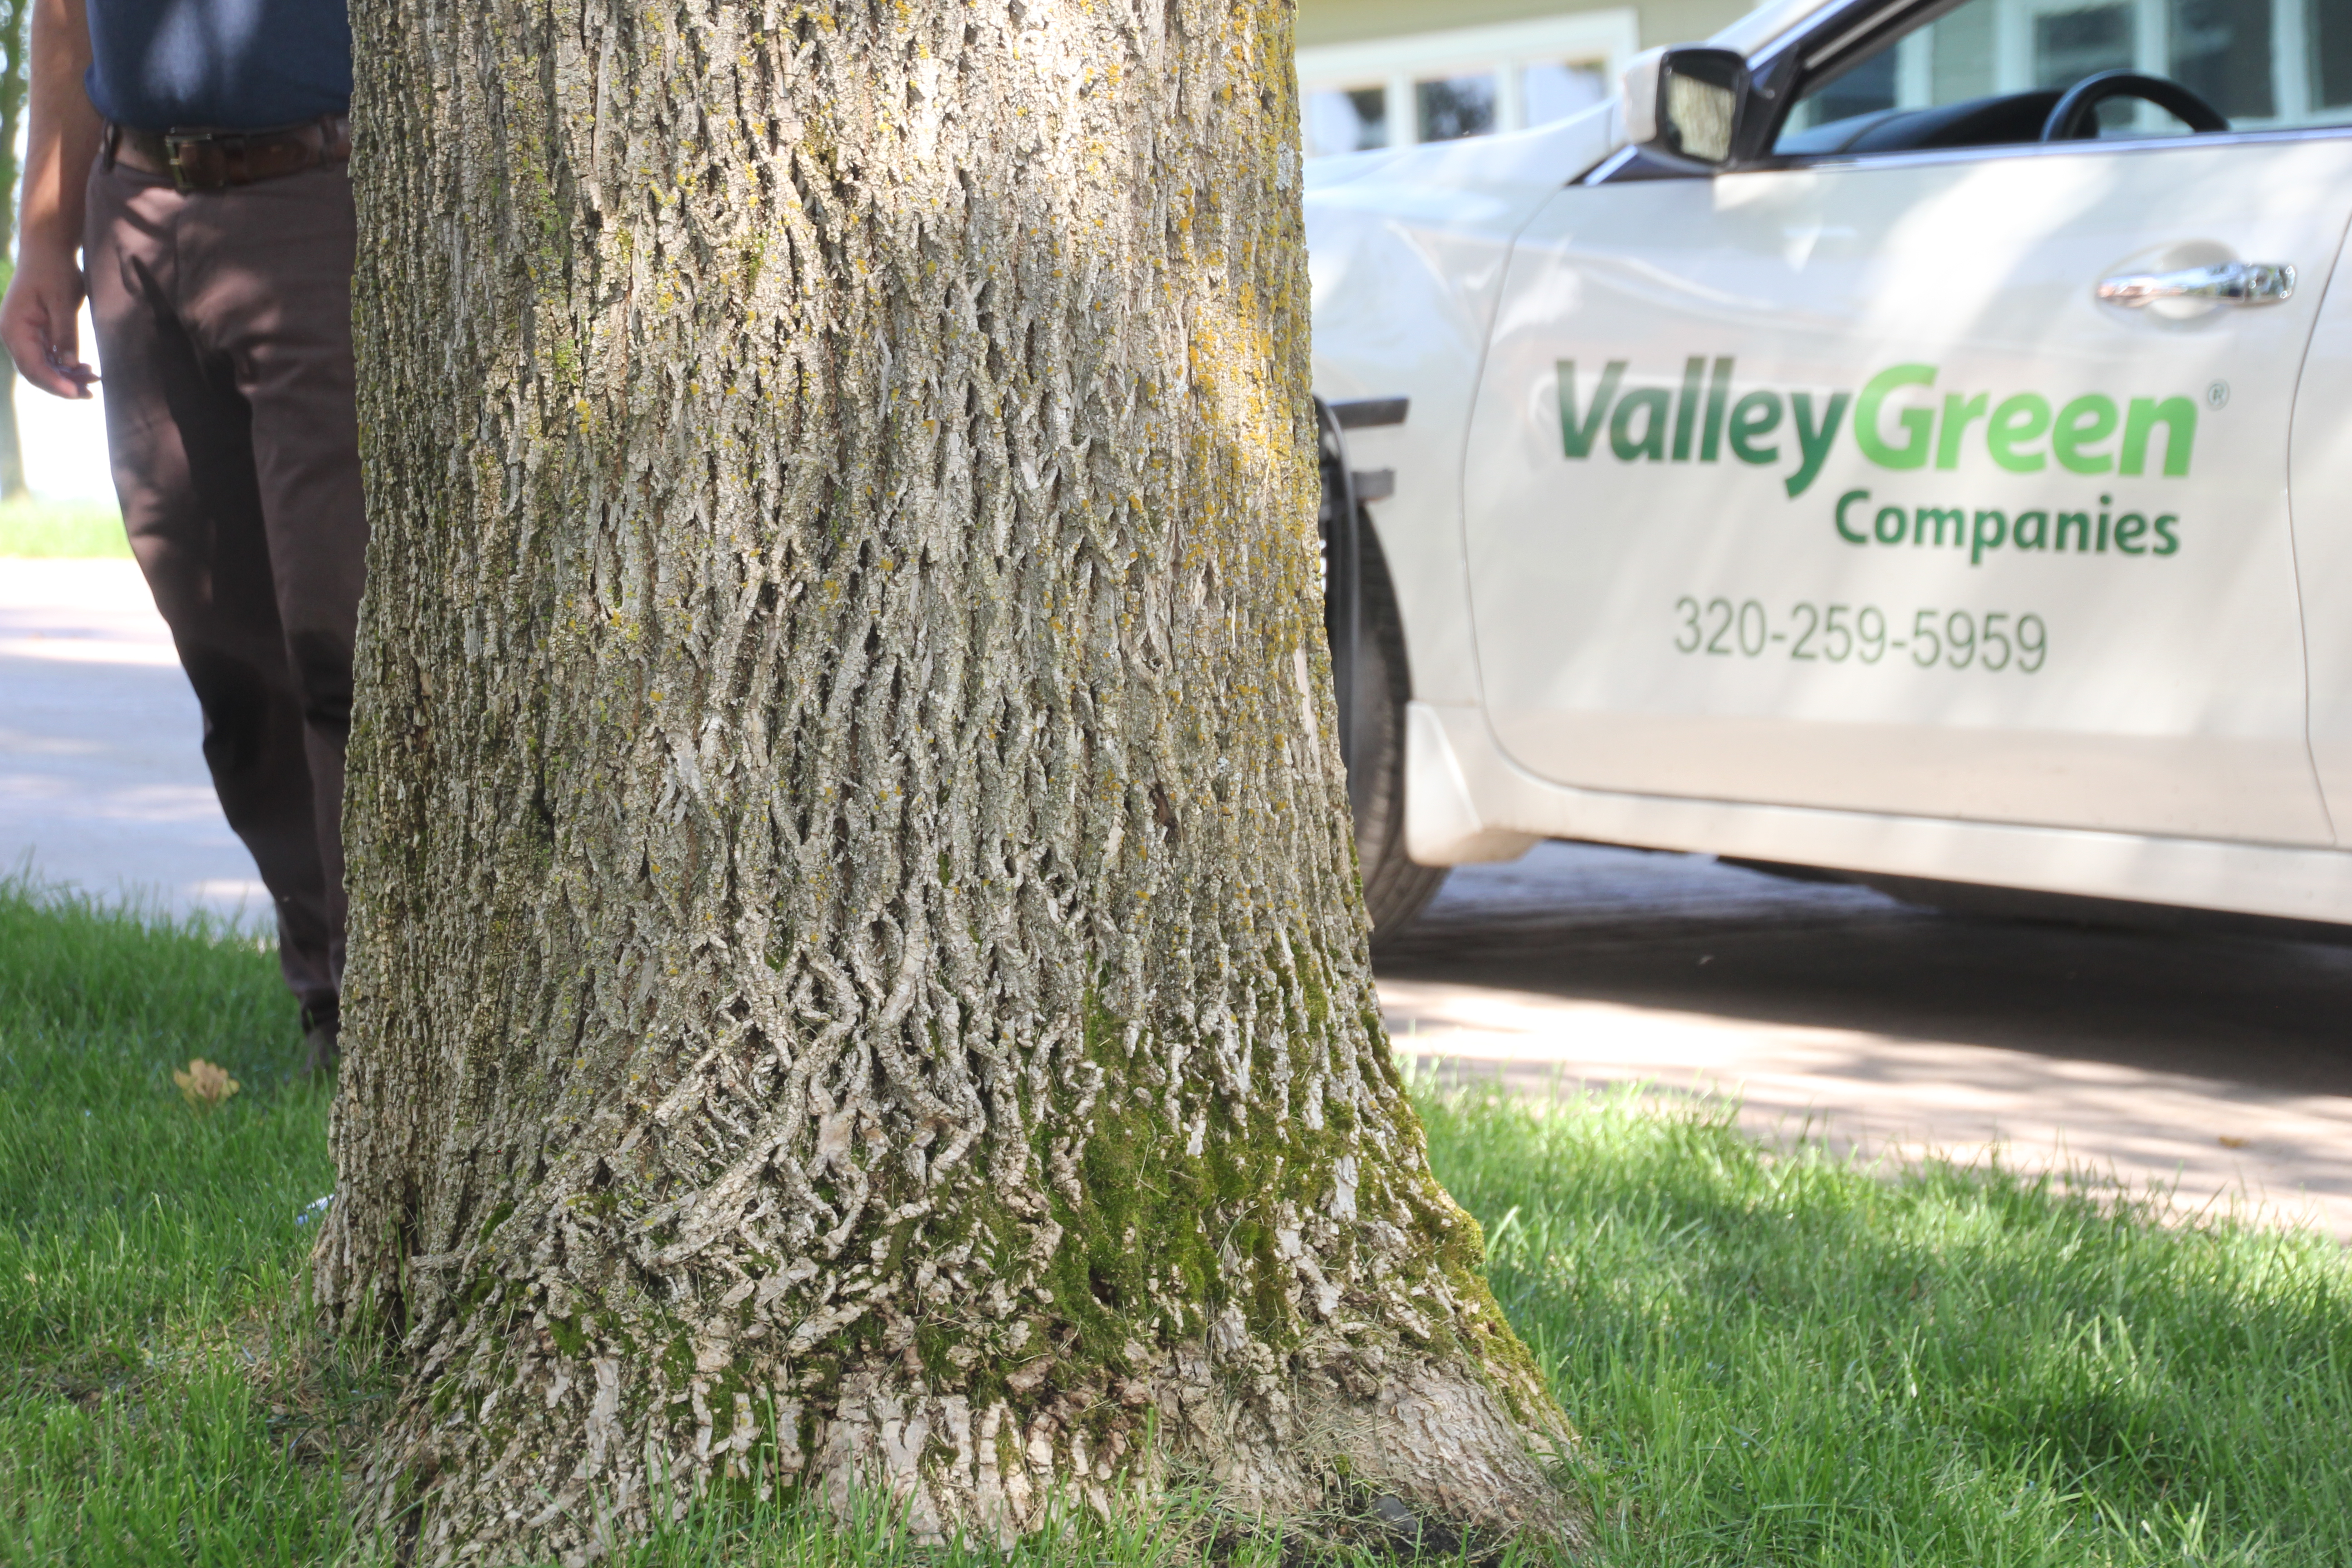 Ash tree at a Sartell, Minnesota home with a Valley Green Companies car behind it.